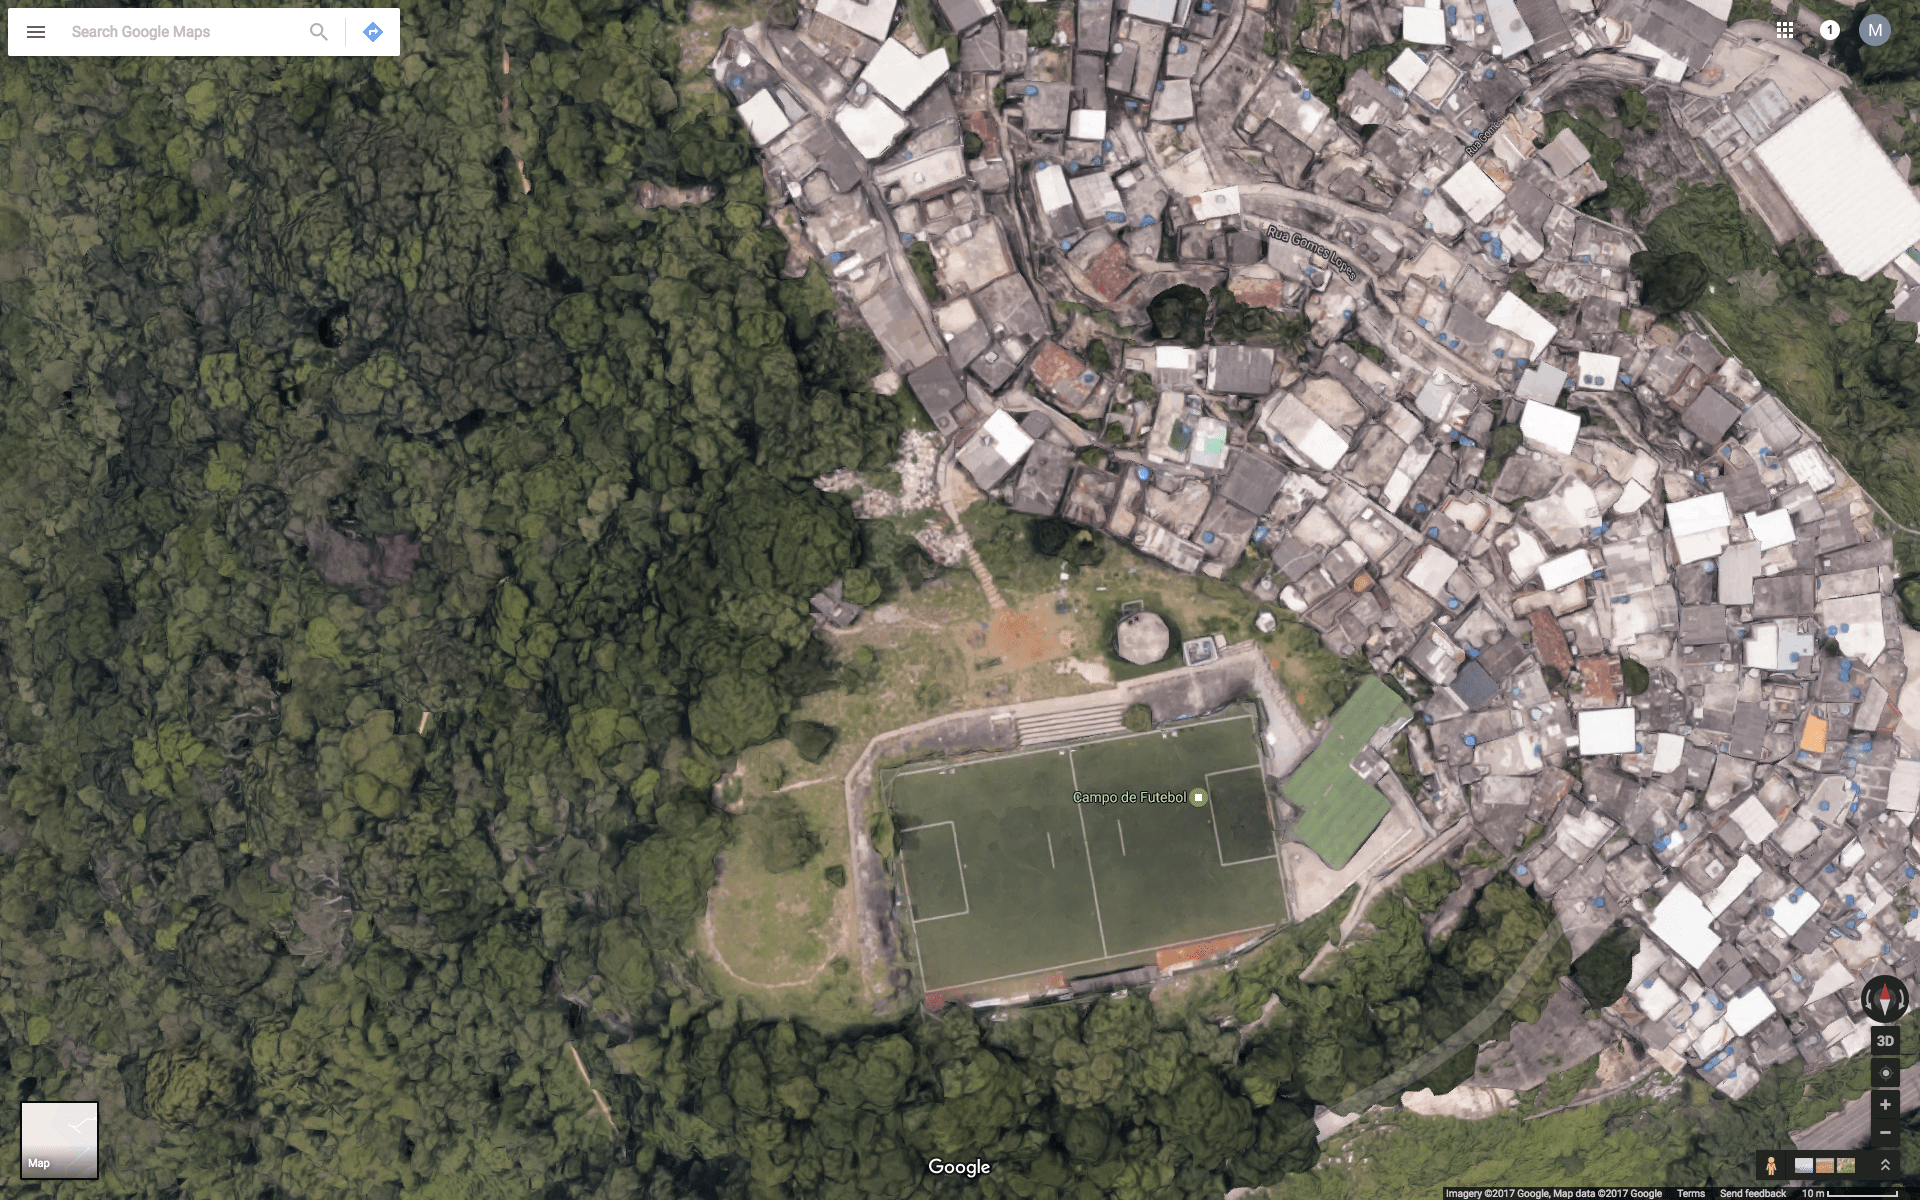 Places that are not on Google Maps     Quartz Here is Morro dos Prazeres  a favela in the heart of Rio de Janeiro